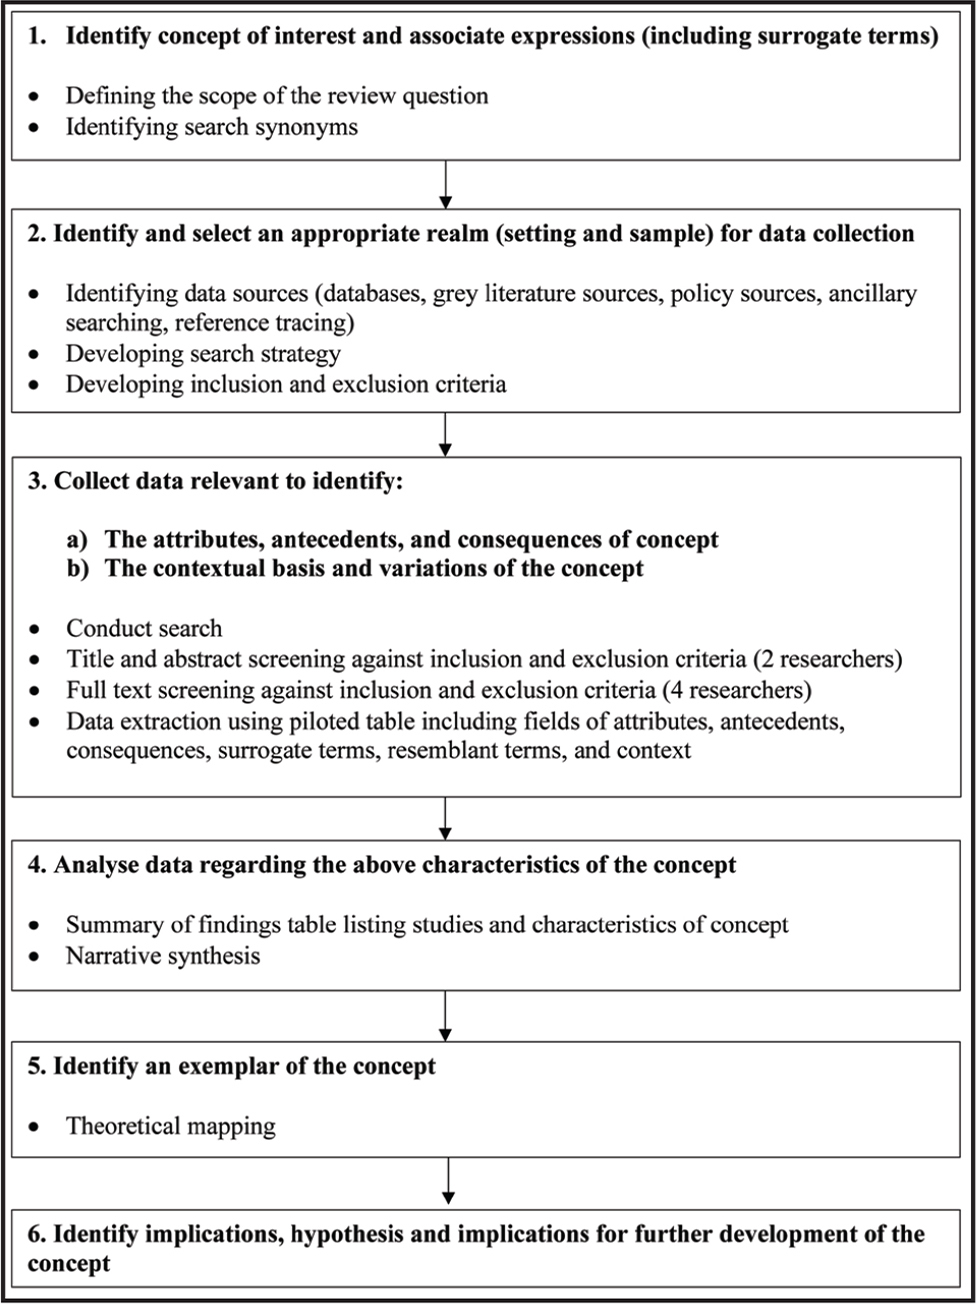 The combining of an evolutionary concept analysis with systematic review principles.